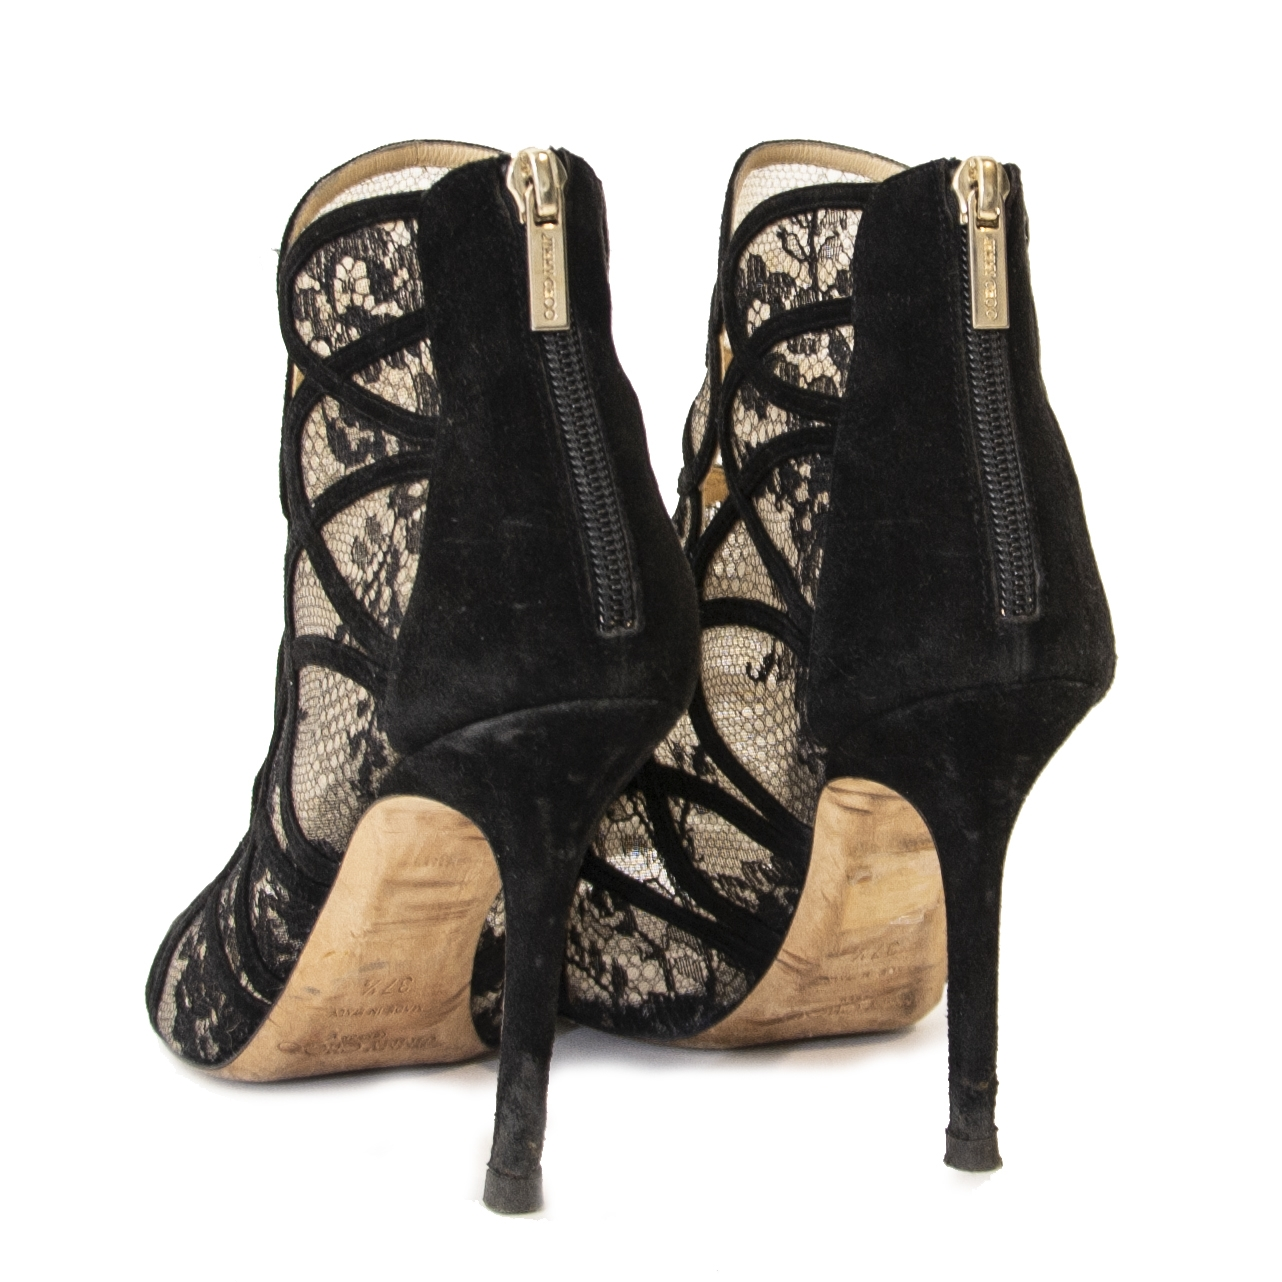 Jimmy Choo Black Lace Peeptoe Heels now online at labellov.com for the best price